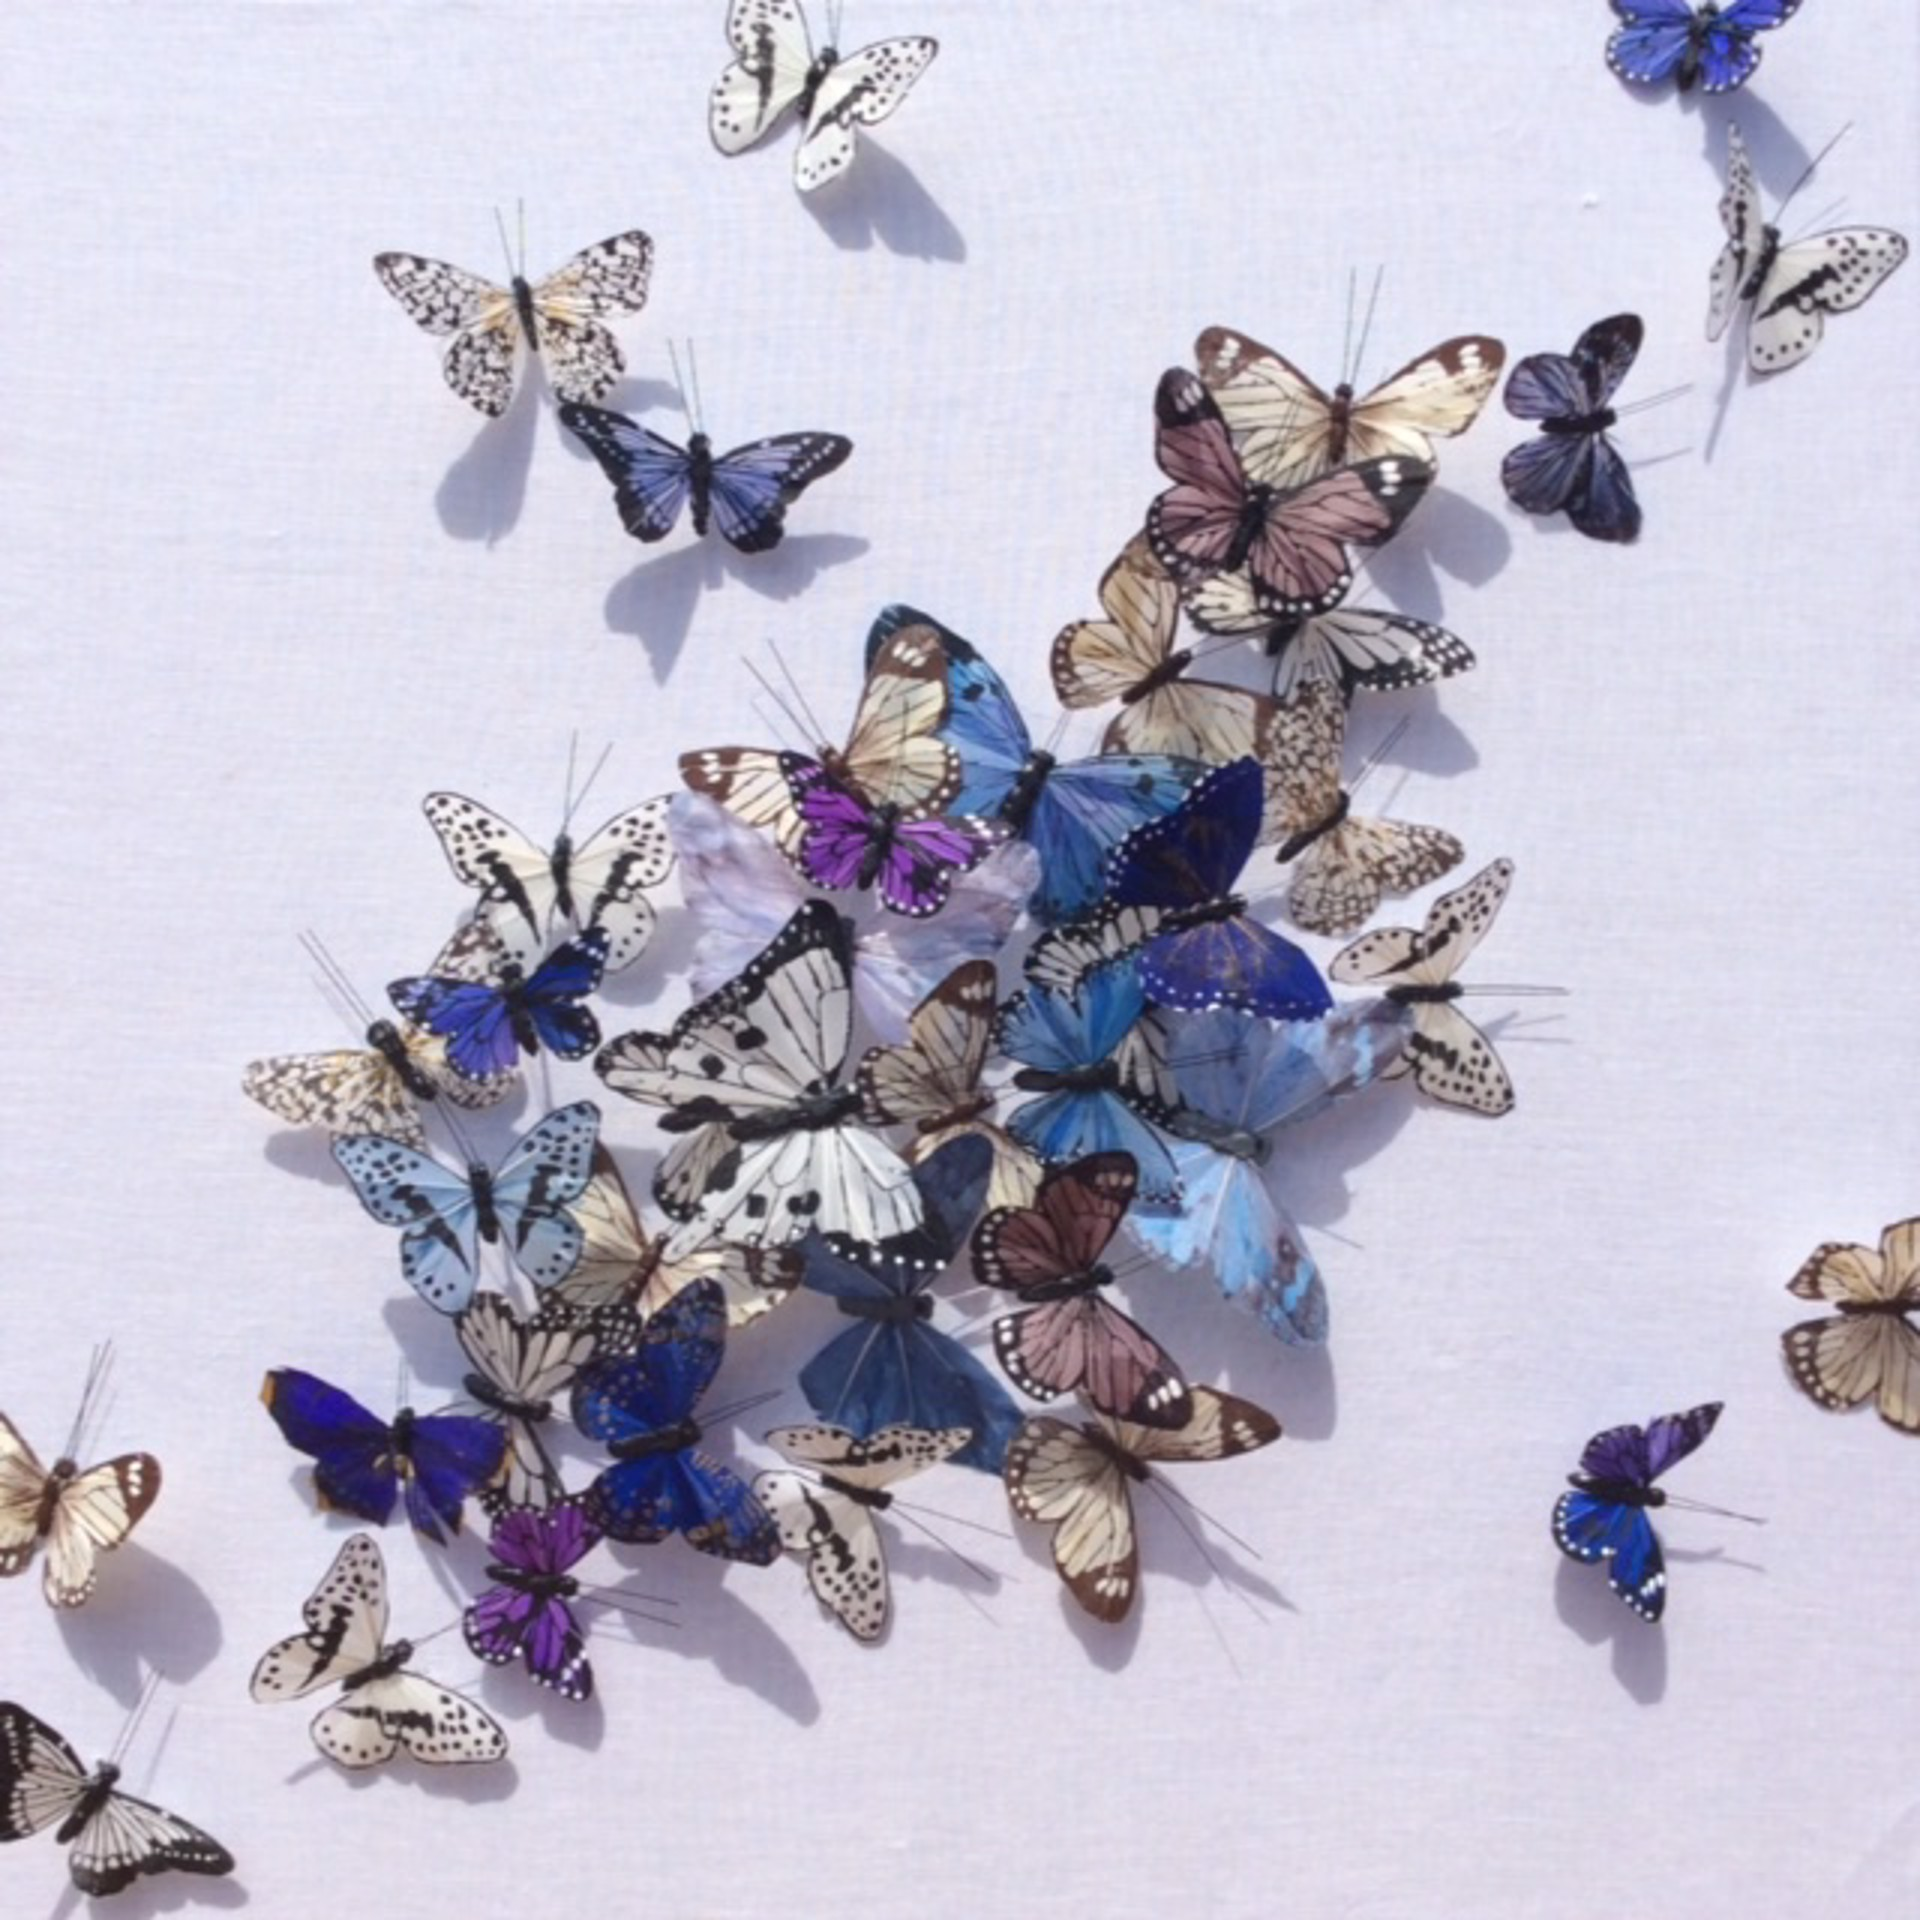 Neutrals, Indigo, Periwinkle, Mauve and a Touch of Purple by Juan Carlos Collada